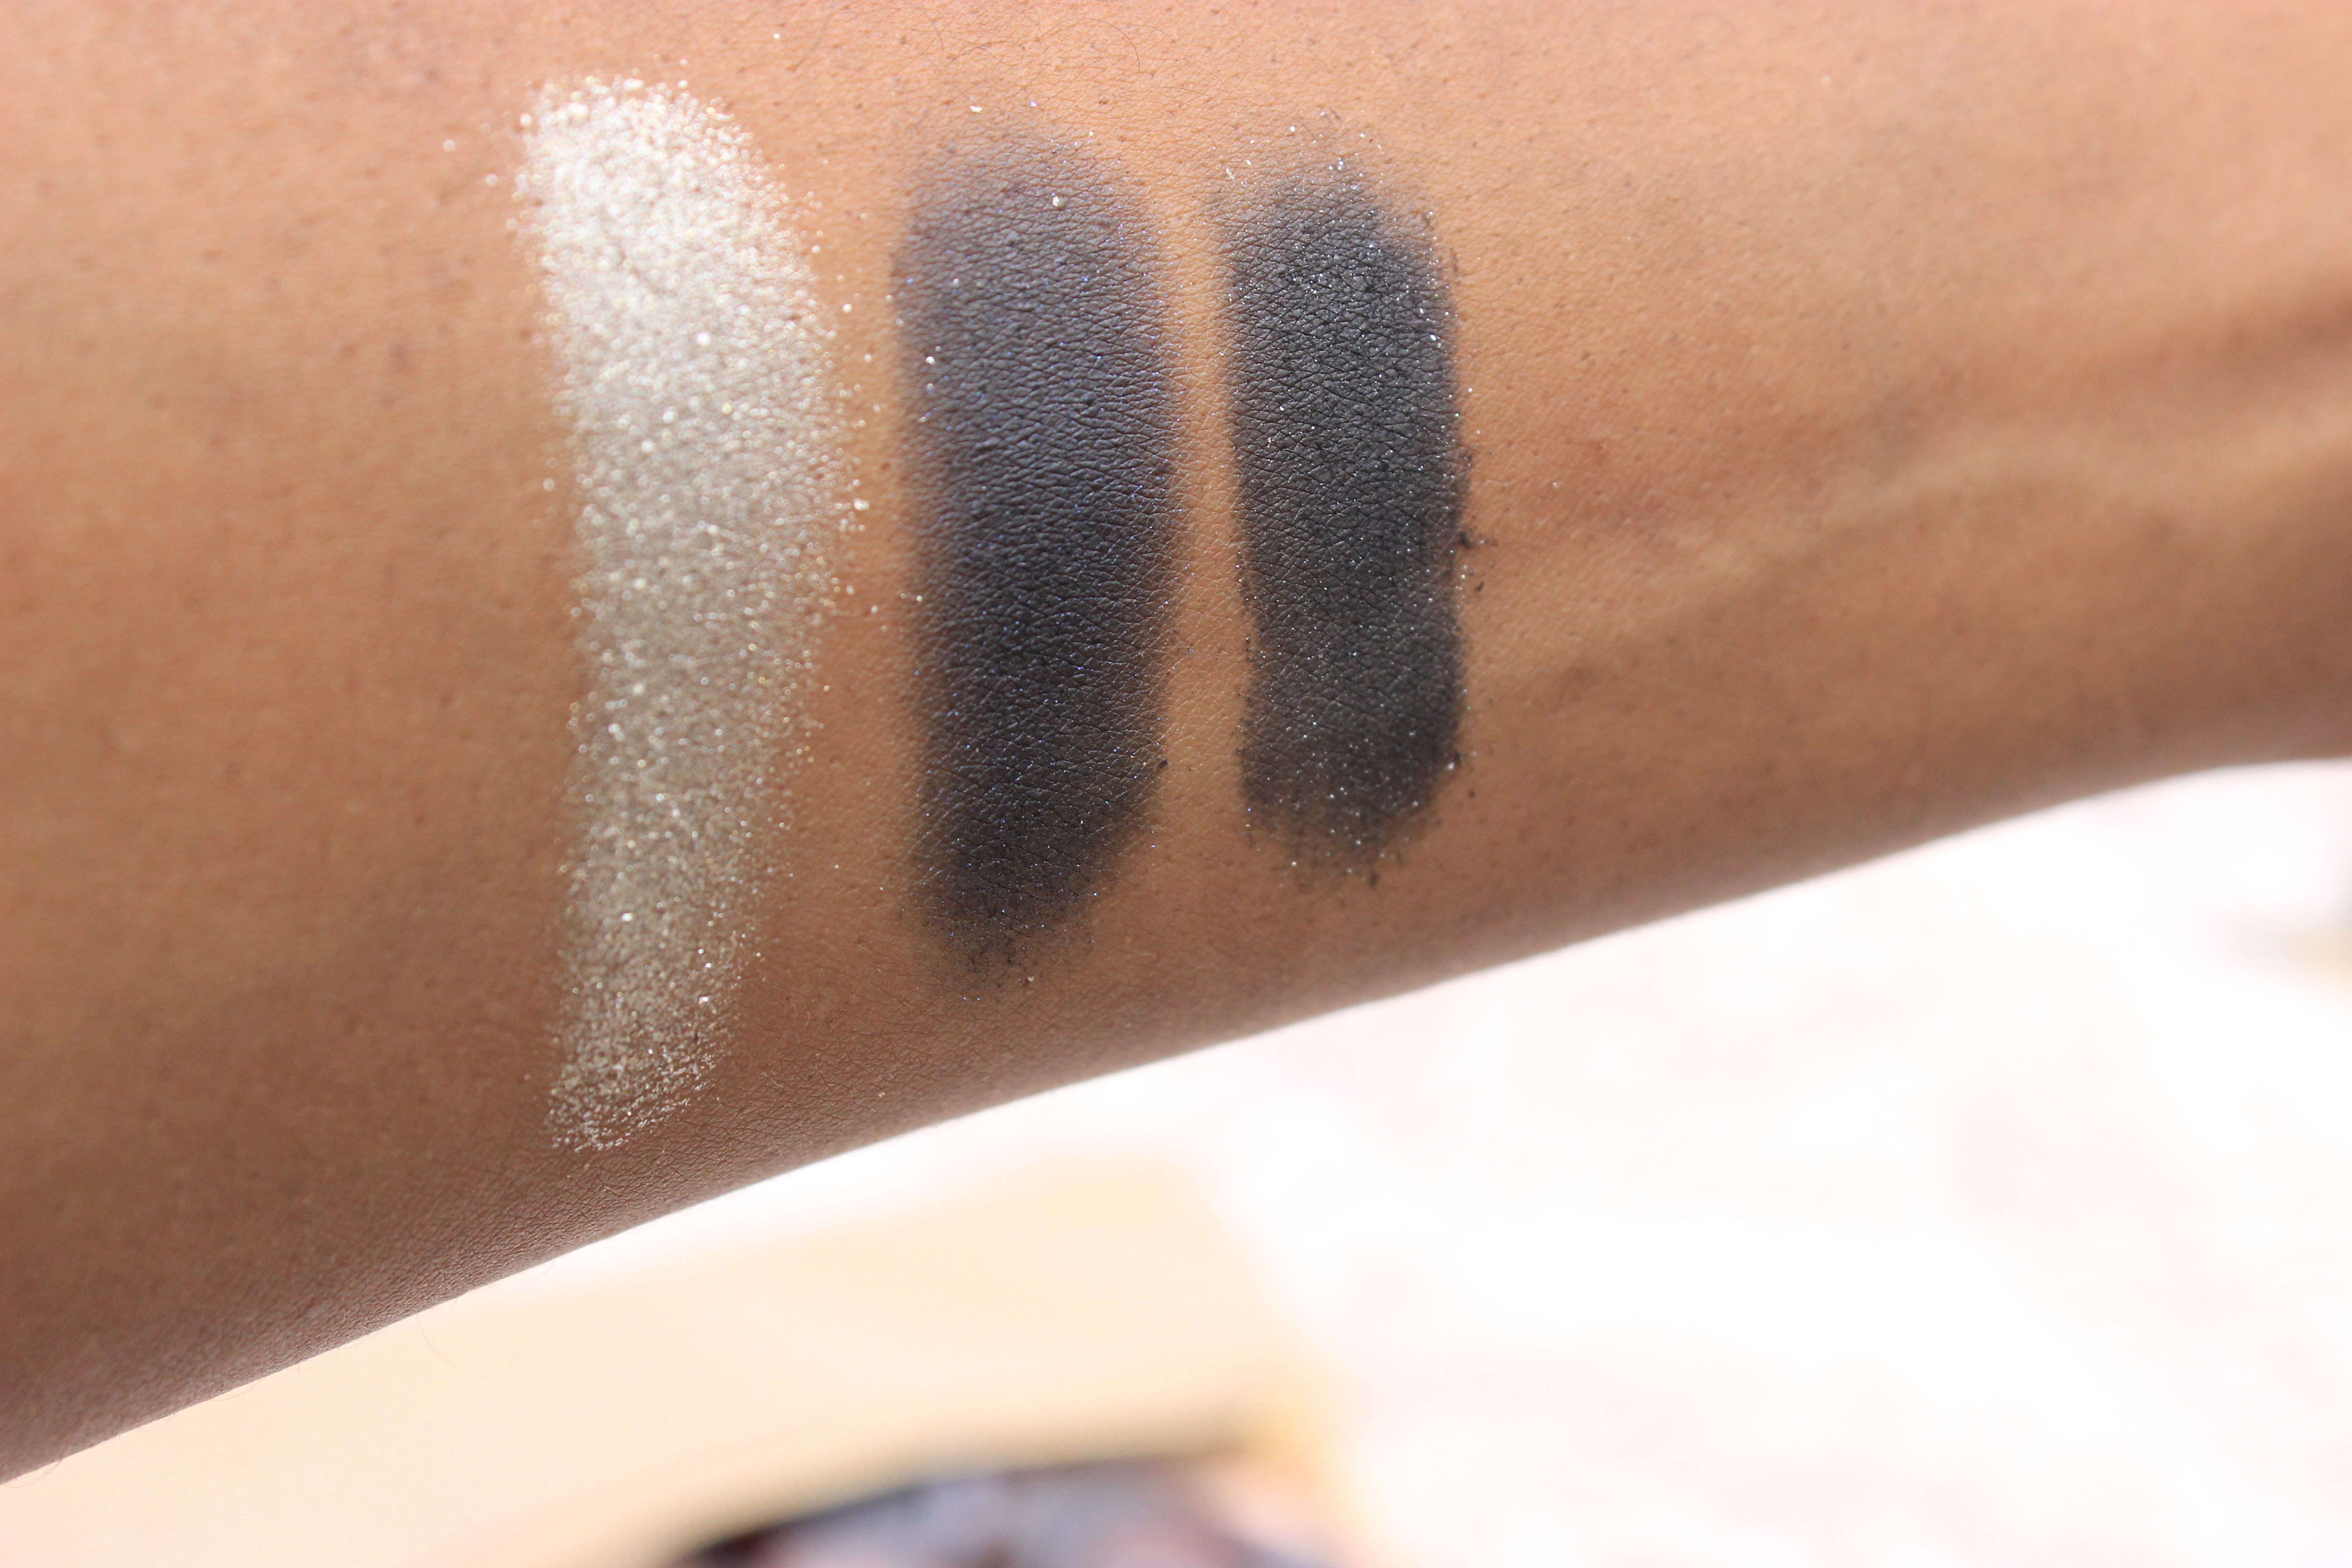 WetnWild-eyeshadow-palette-bust-a-wrap-review-oohlalablog-